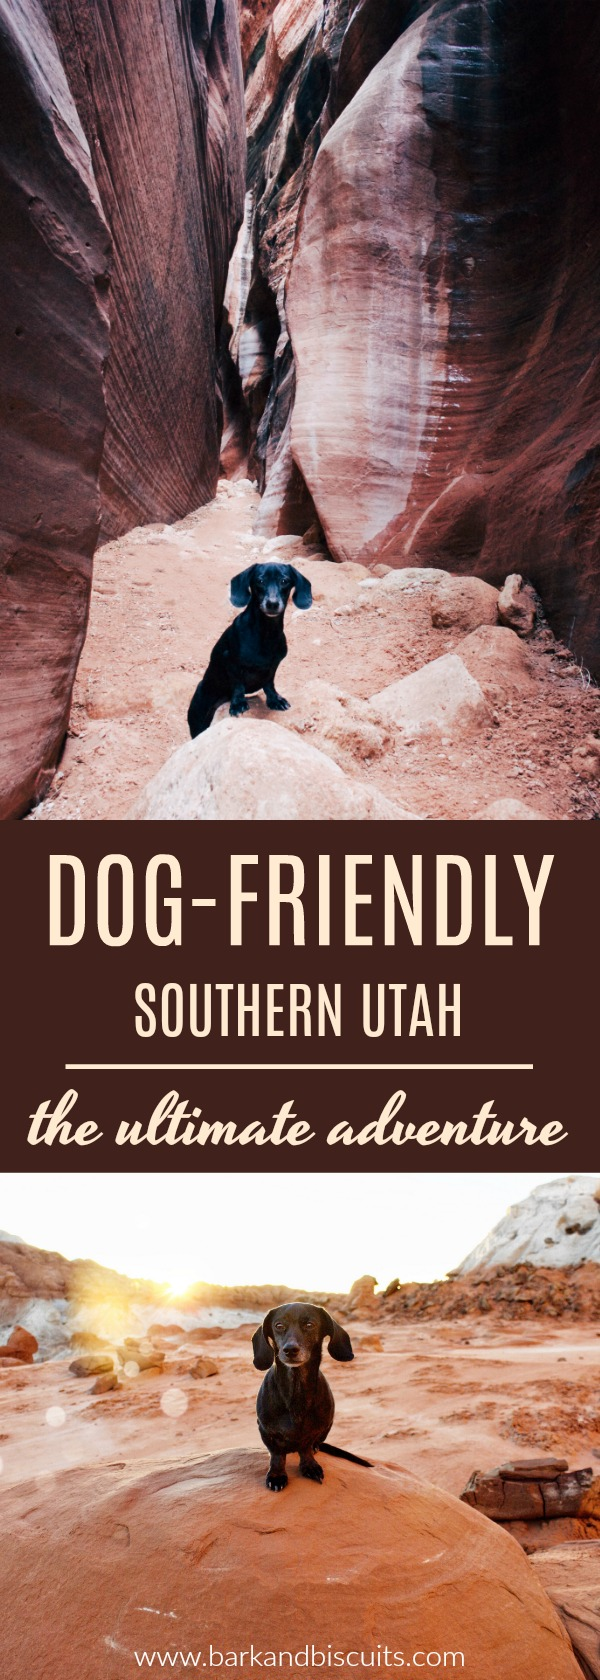 Dog-Friendly Southern Utah-The Ultimate Adventure